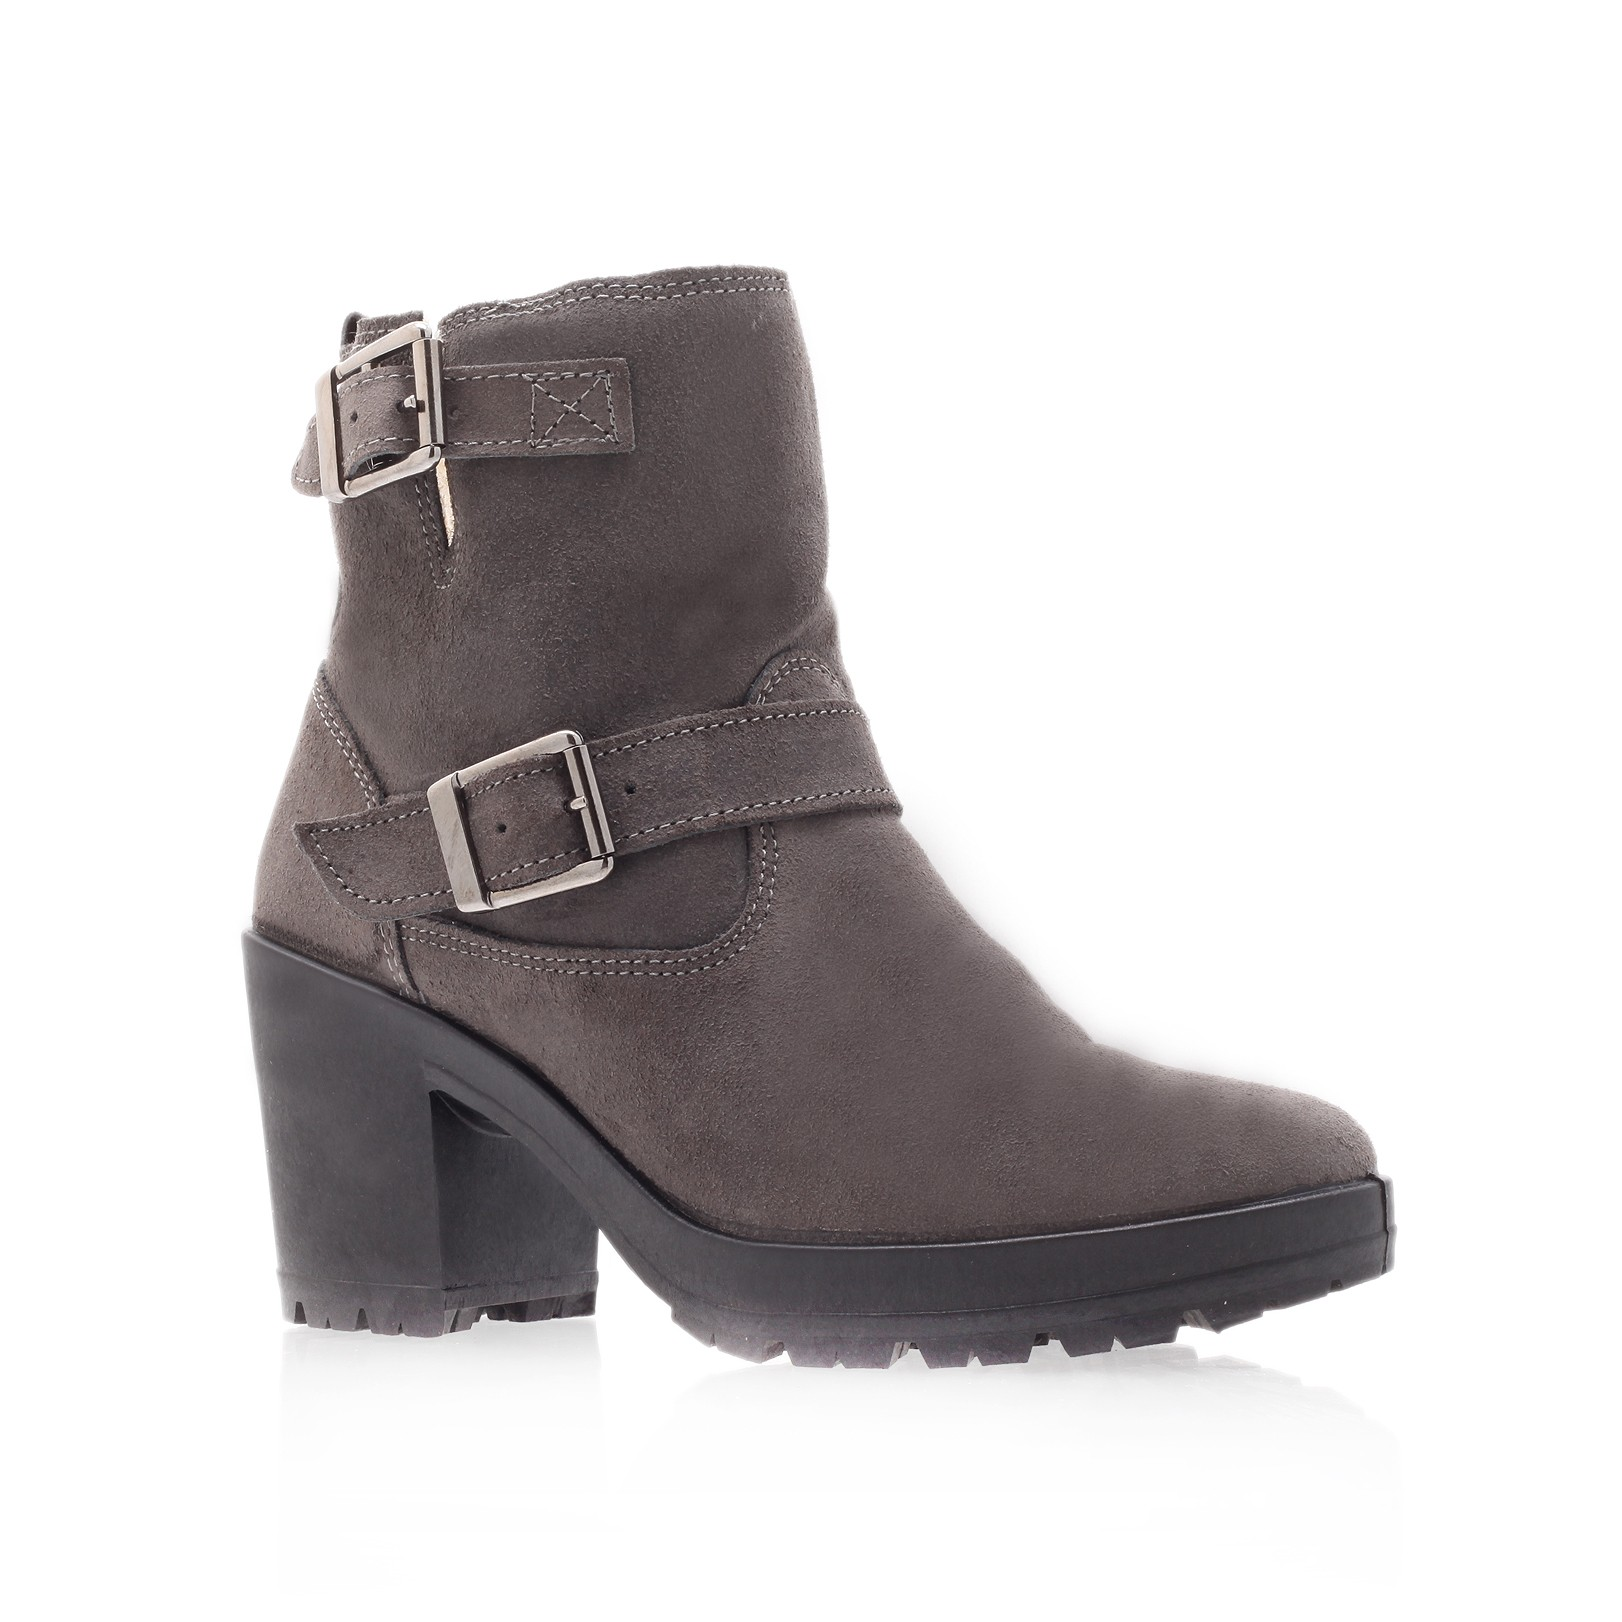 miss kg harry ankle boots in gray light grey lyst